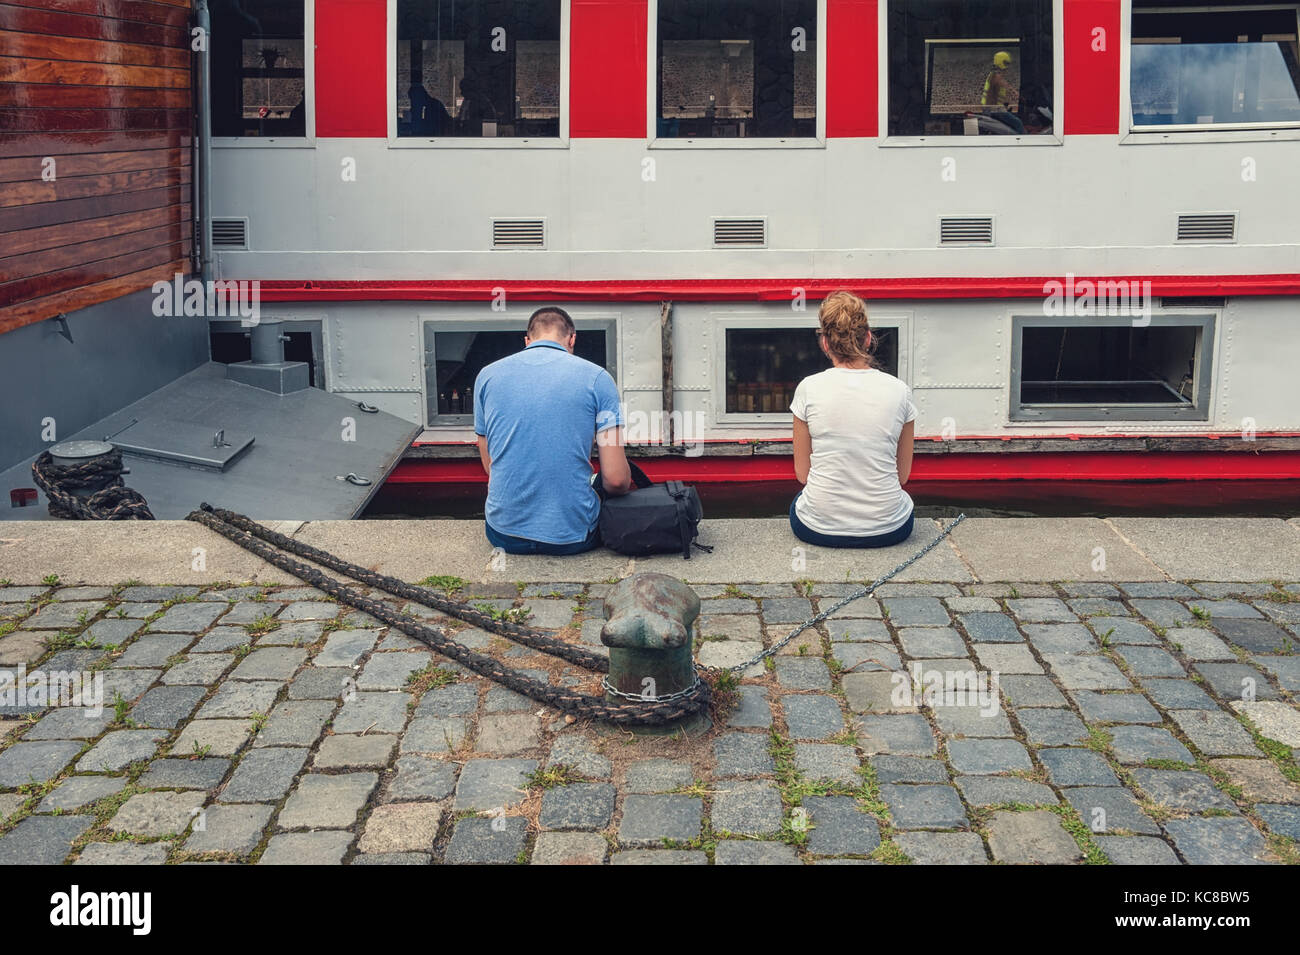 Two unidentified people sitting with their backs to the camera without touching each other. Human relationships. - Stock Image